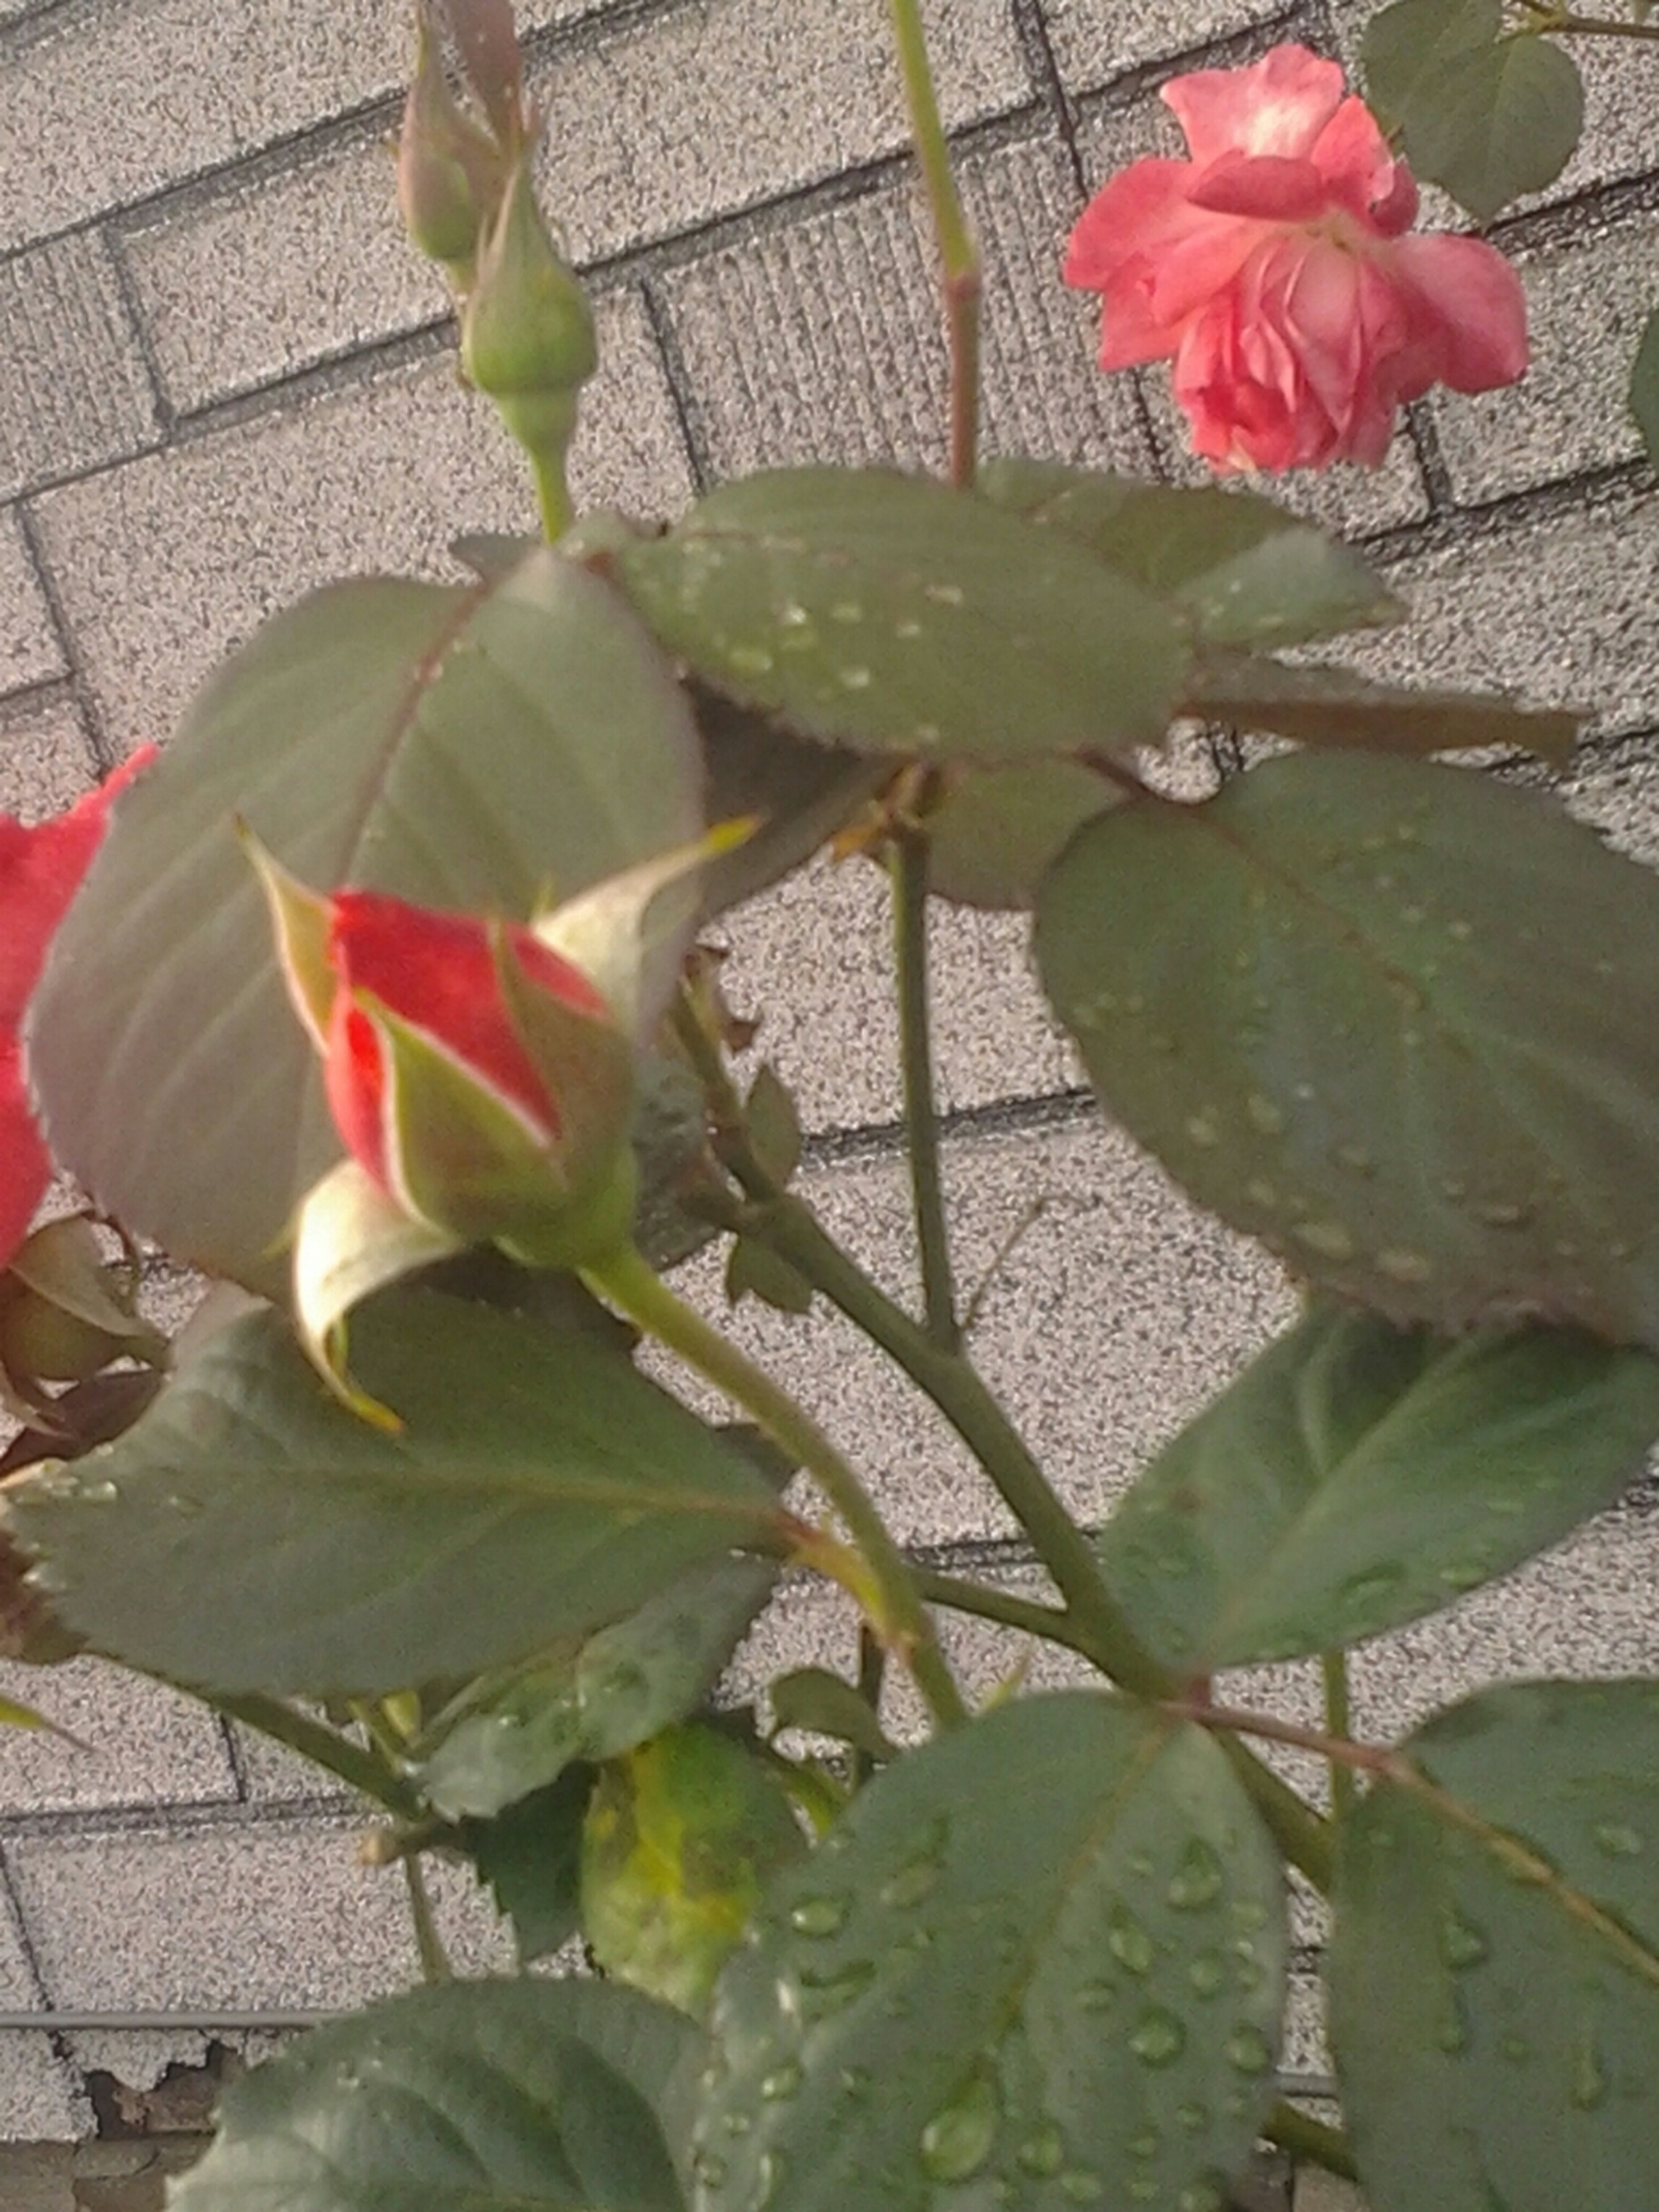 flower, leaf, petal, freshness, fragility, plant, growth, flower head, beauty in nature, nature, rose - flower, pink color, potted plant, close-up, blooming, single flower, red, high angle view, stem, day